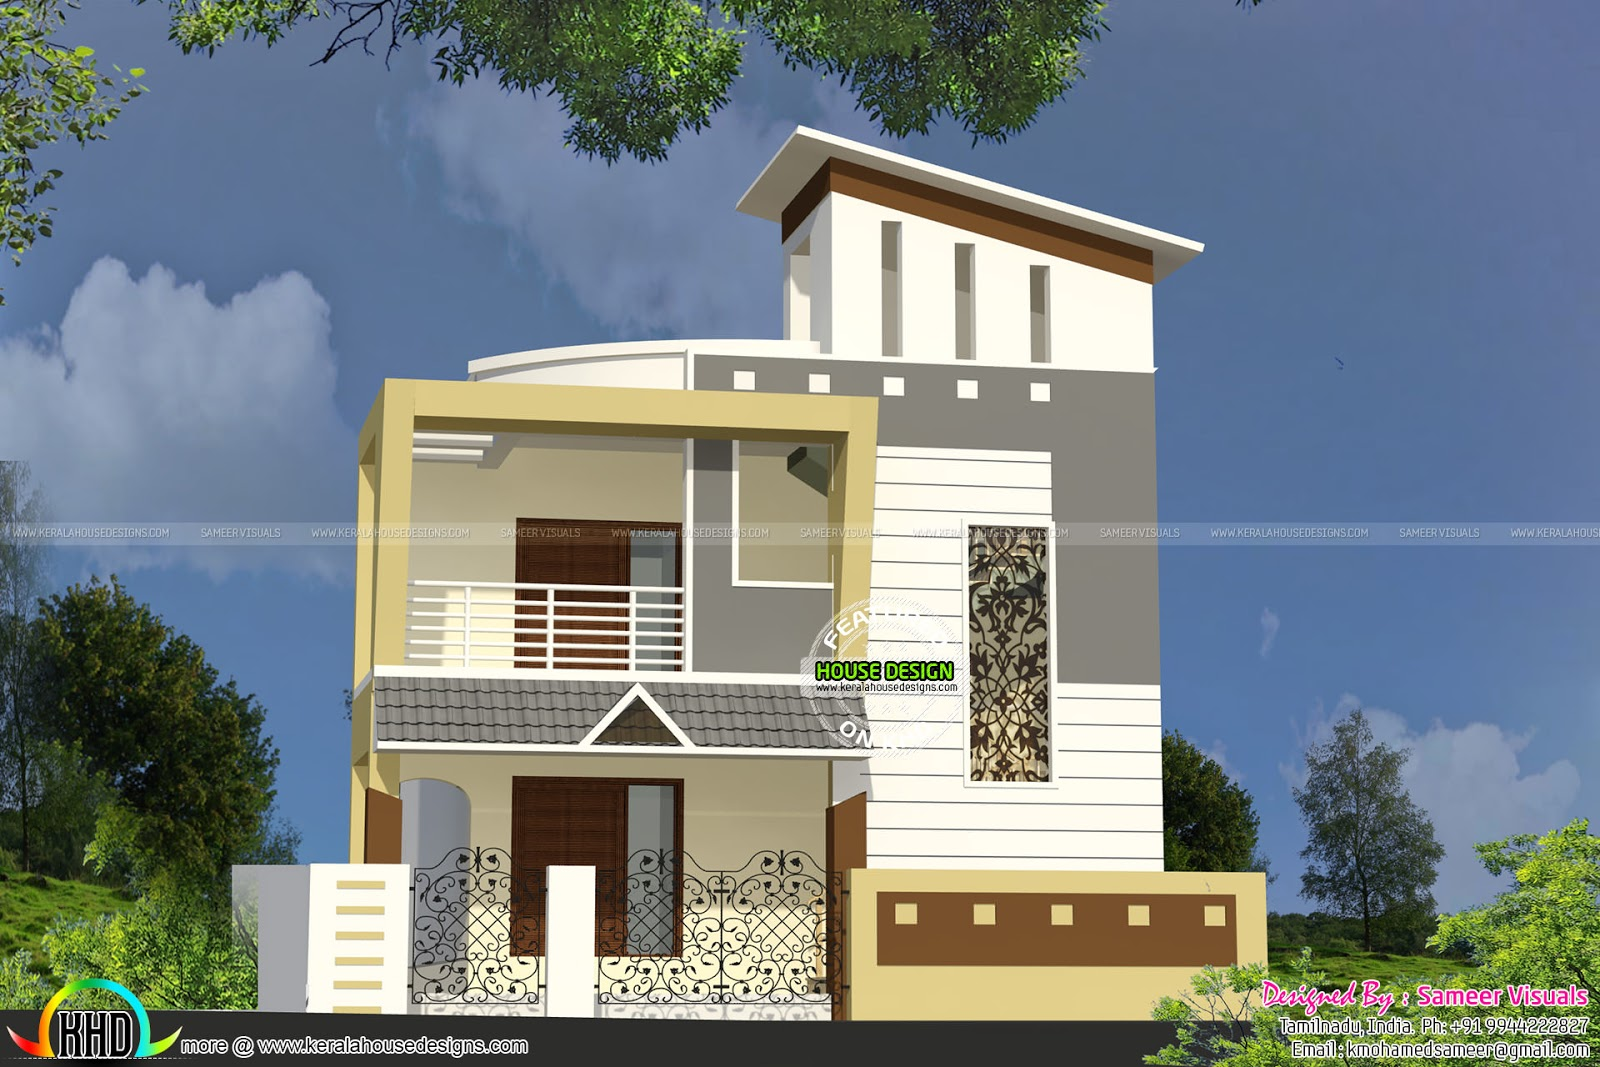 Double floor small home kerala home design and floor plans for Kerala home designs photos in double floor